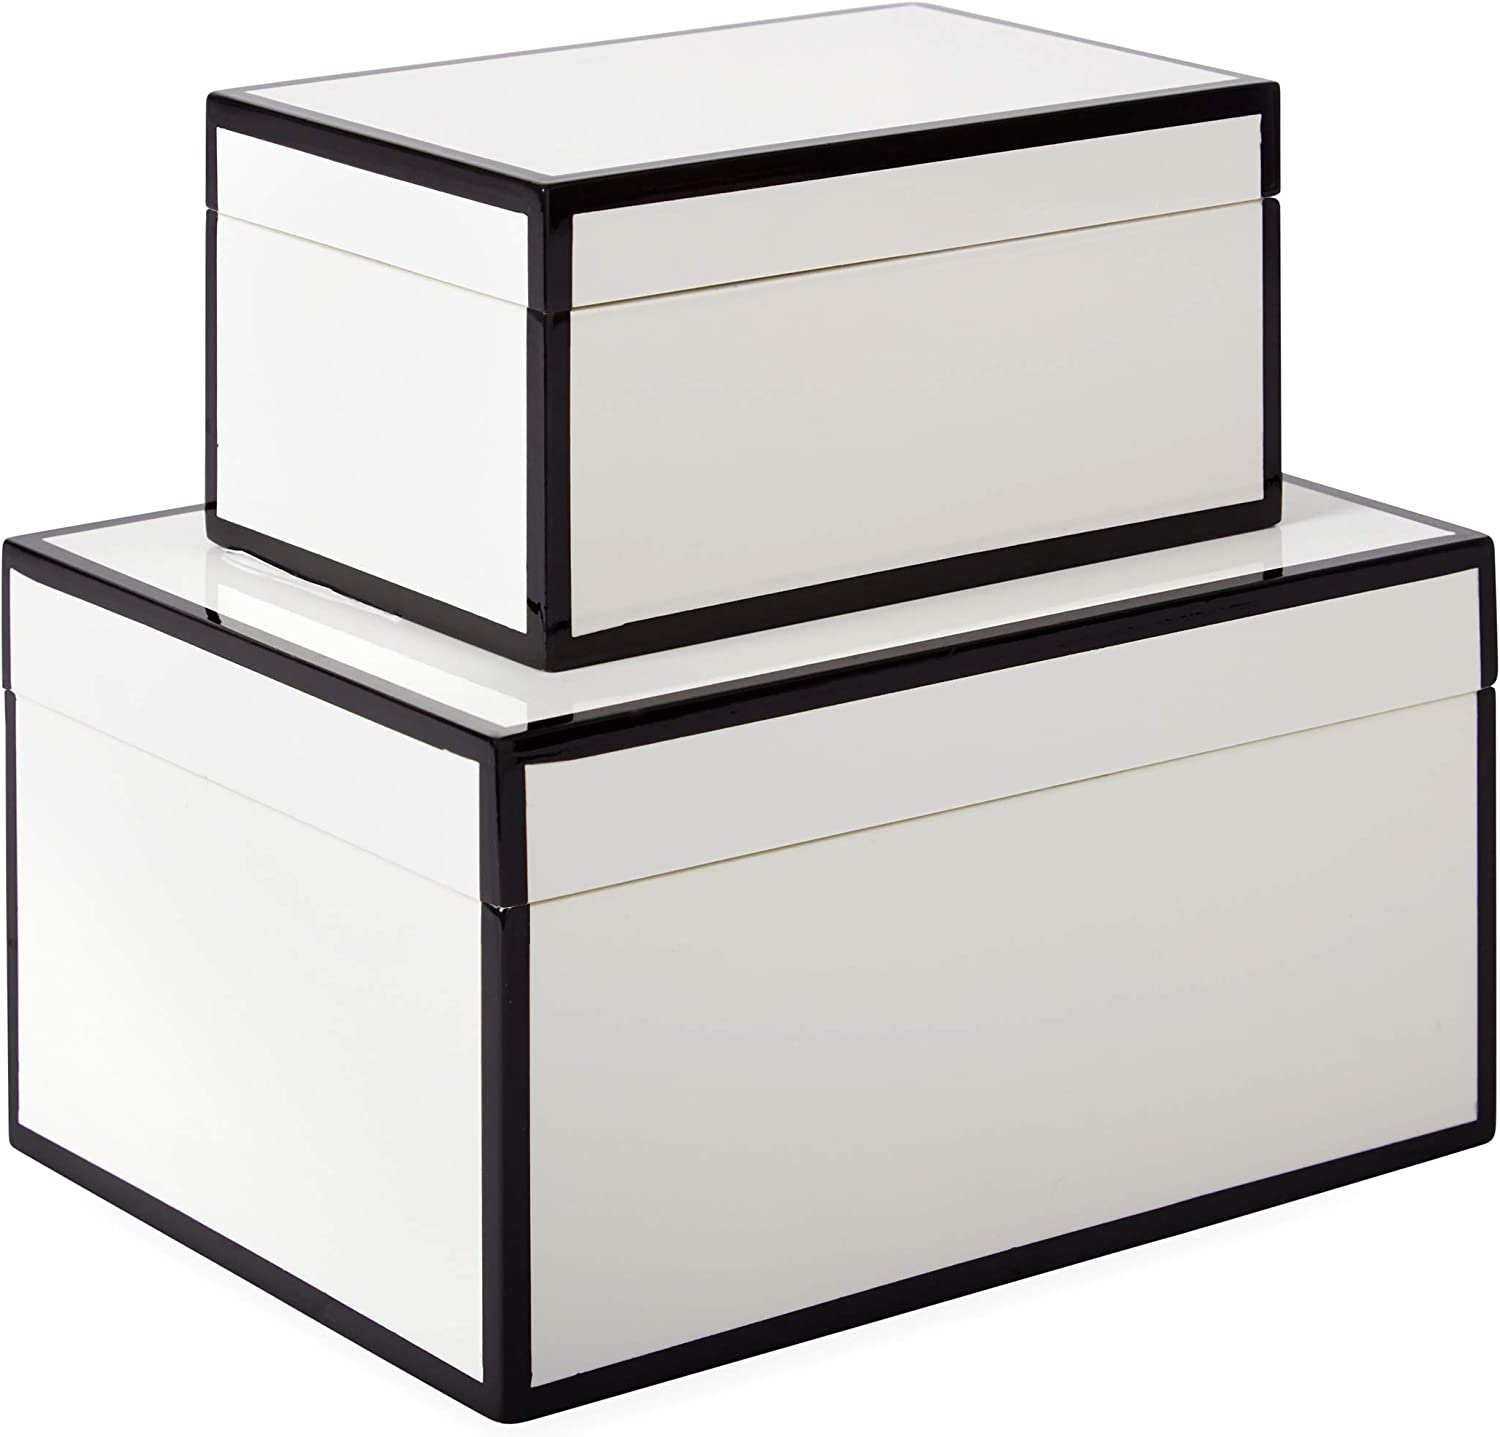 Now House by Jonathan Adler Decorative Accessories Stacking Boxes, White